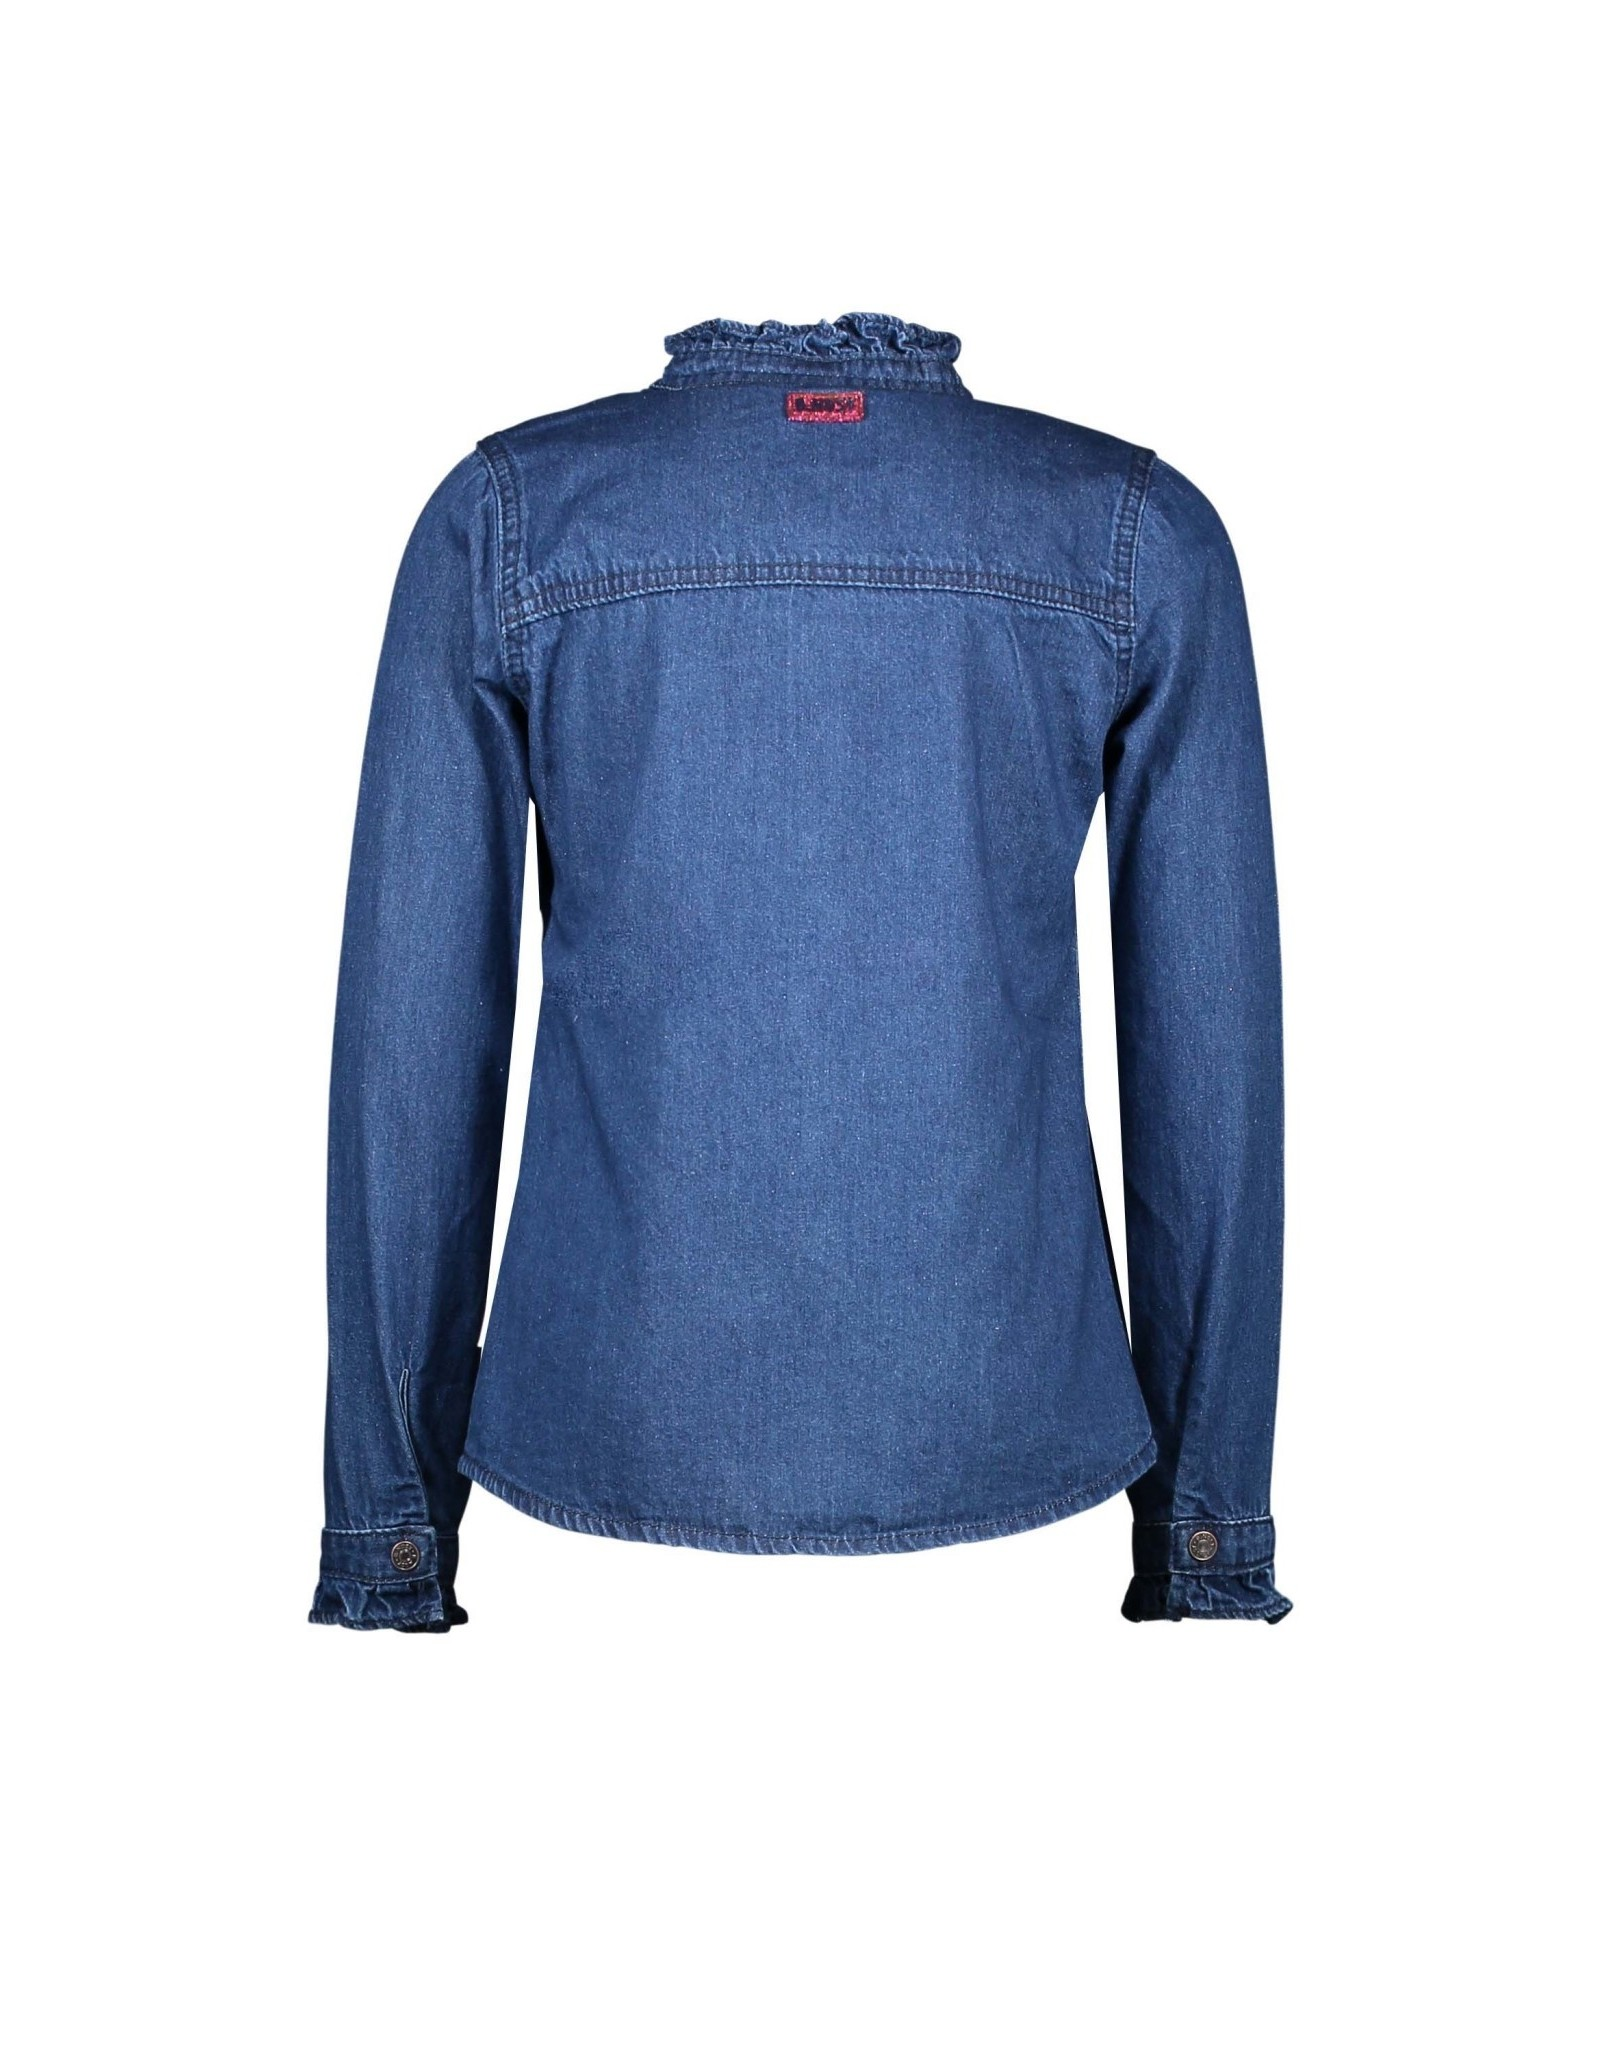 B-nosy Girls denim blouse with ruffle at chest 193 Mid blue